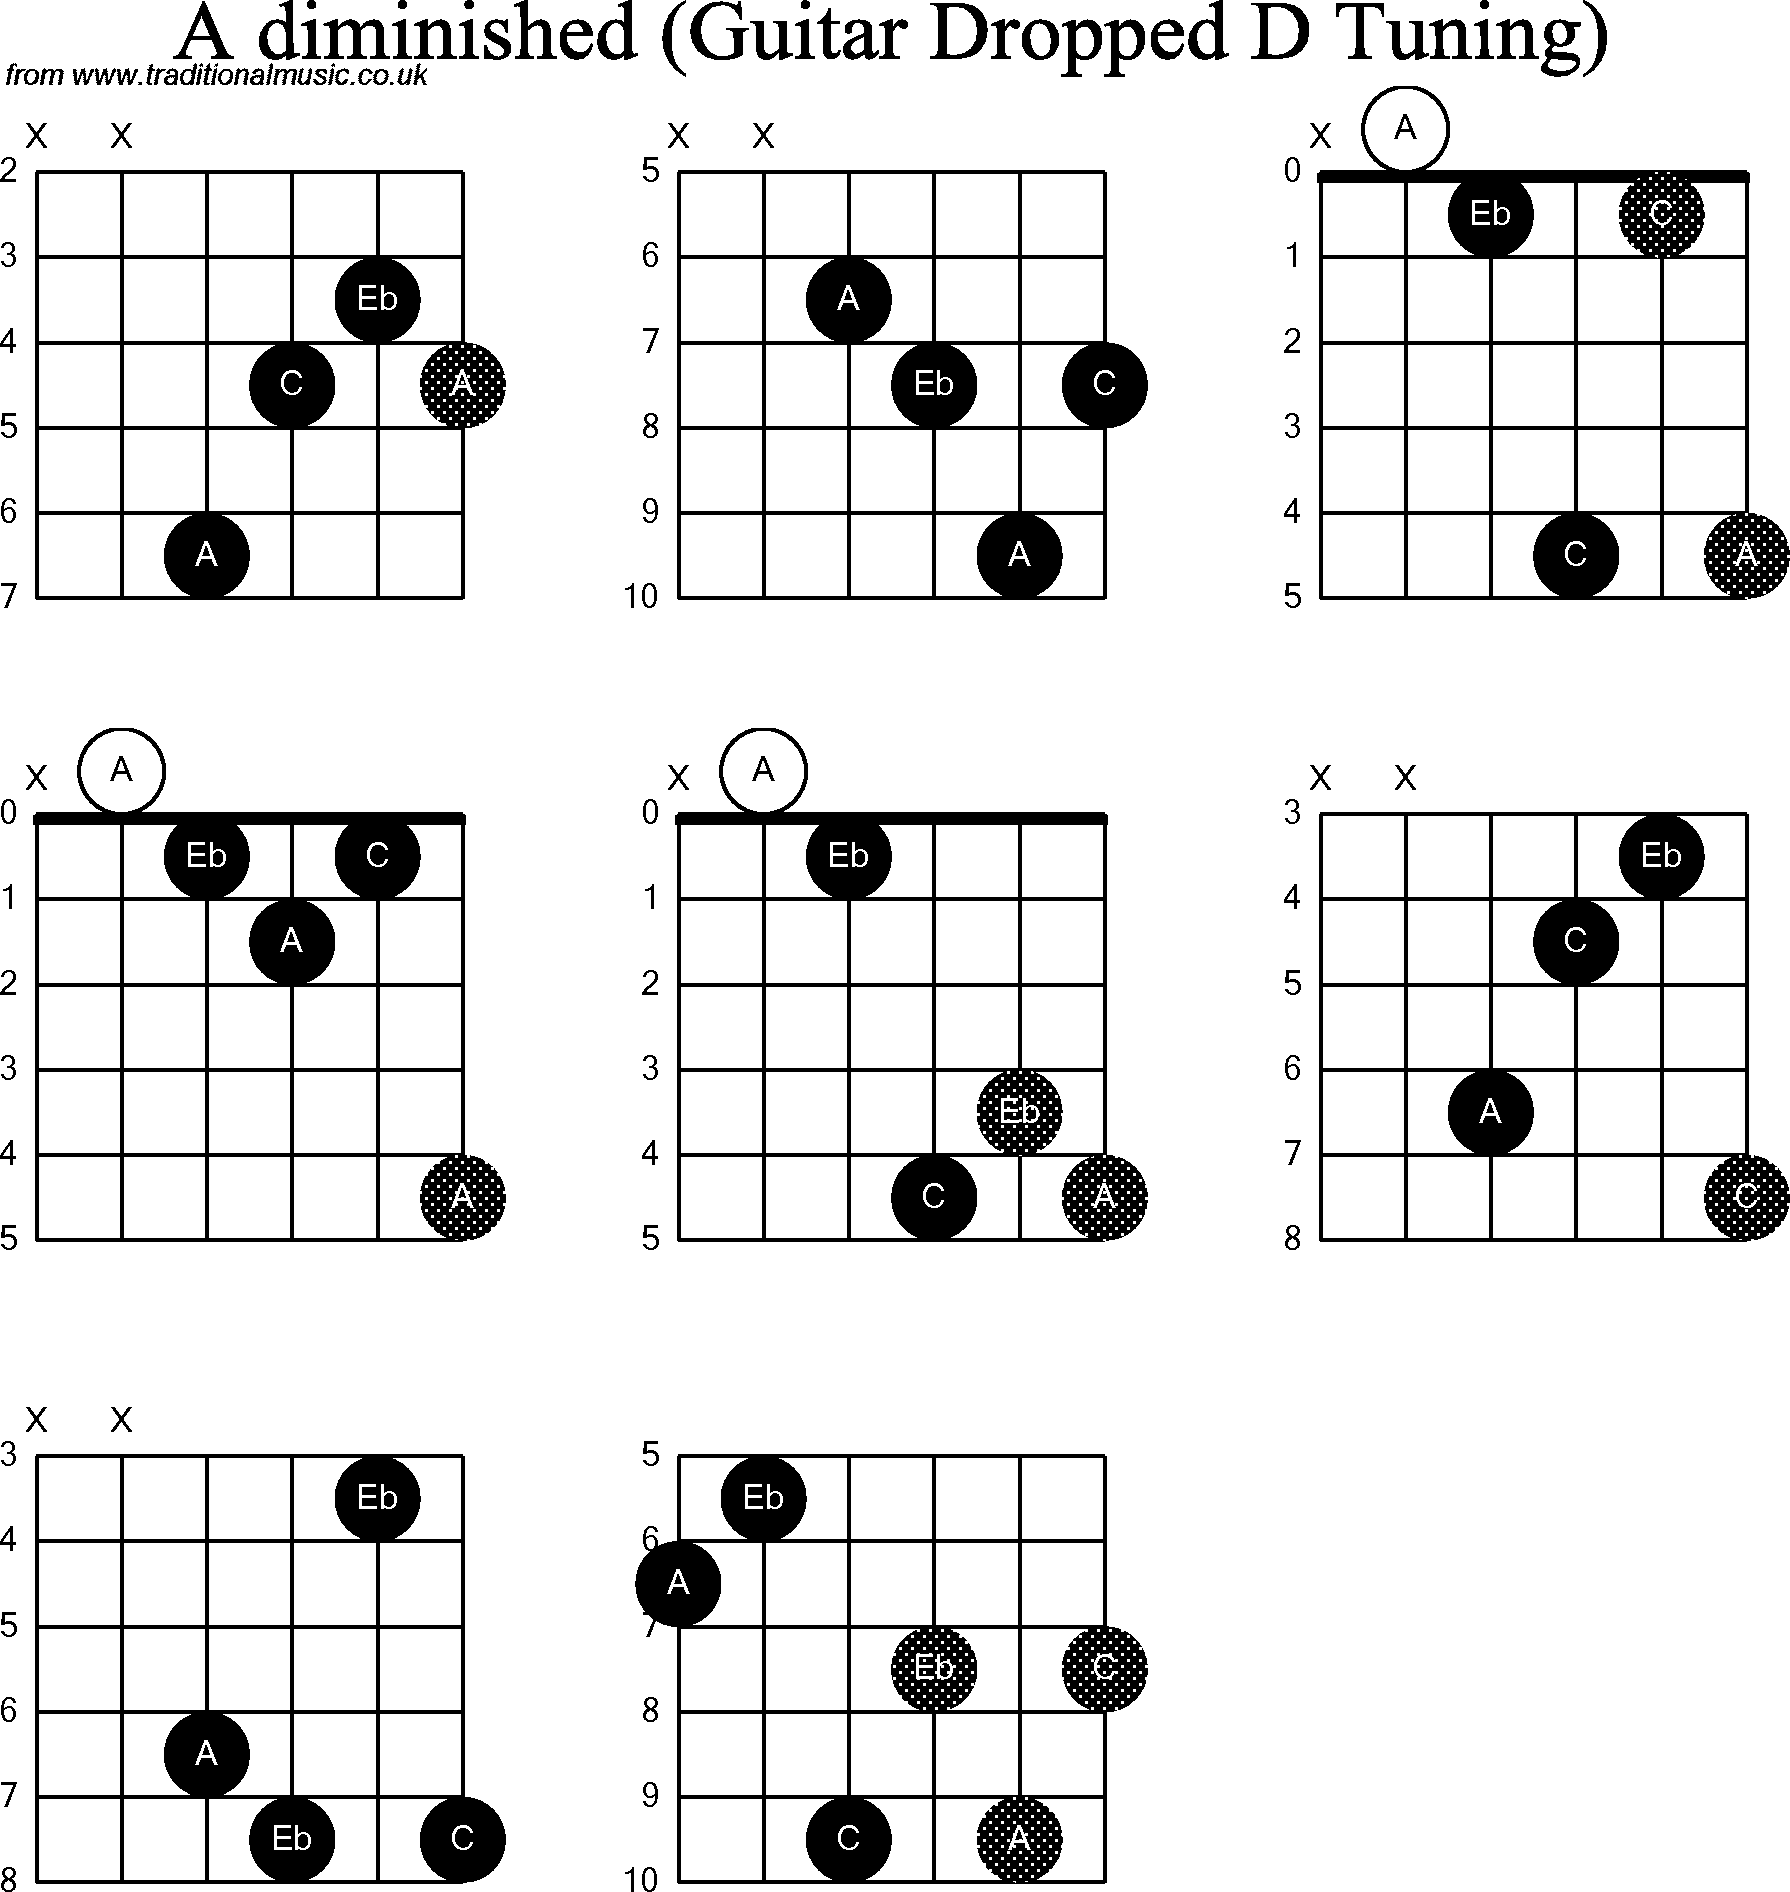 Chord Diagrams For Dropped D Guitardadgbe A Diminished